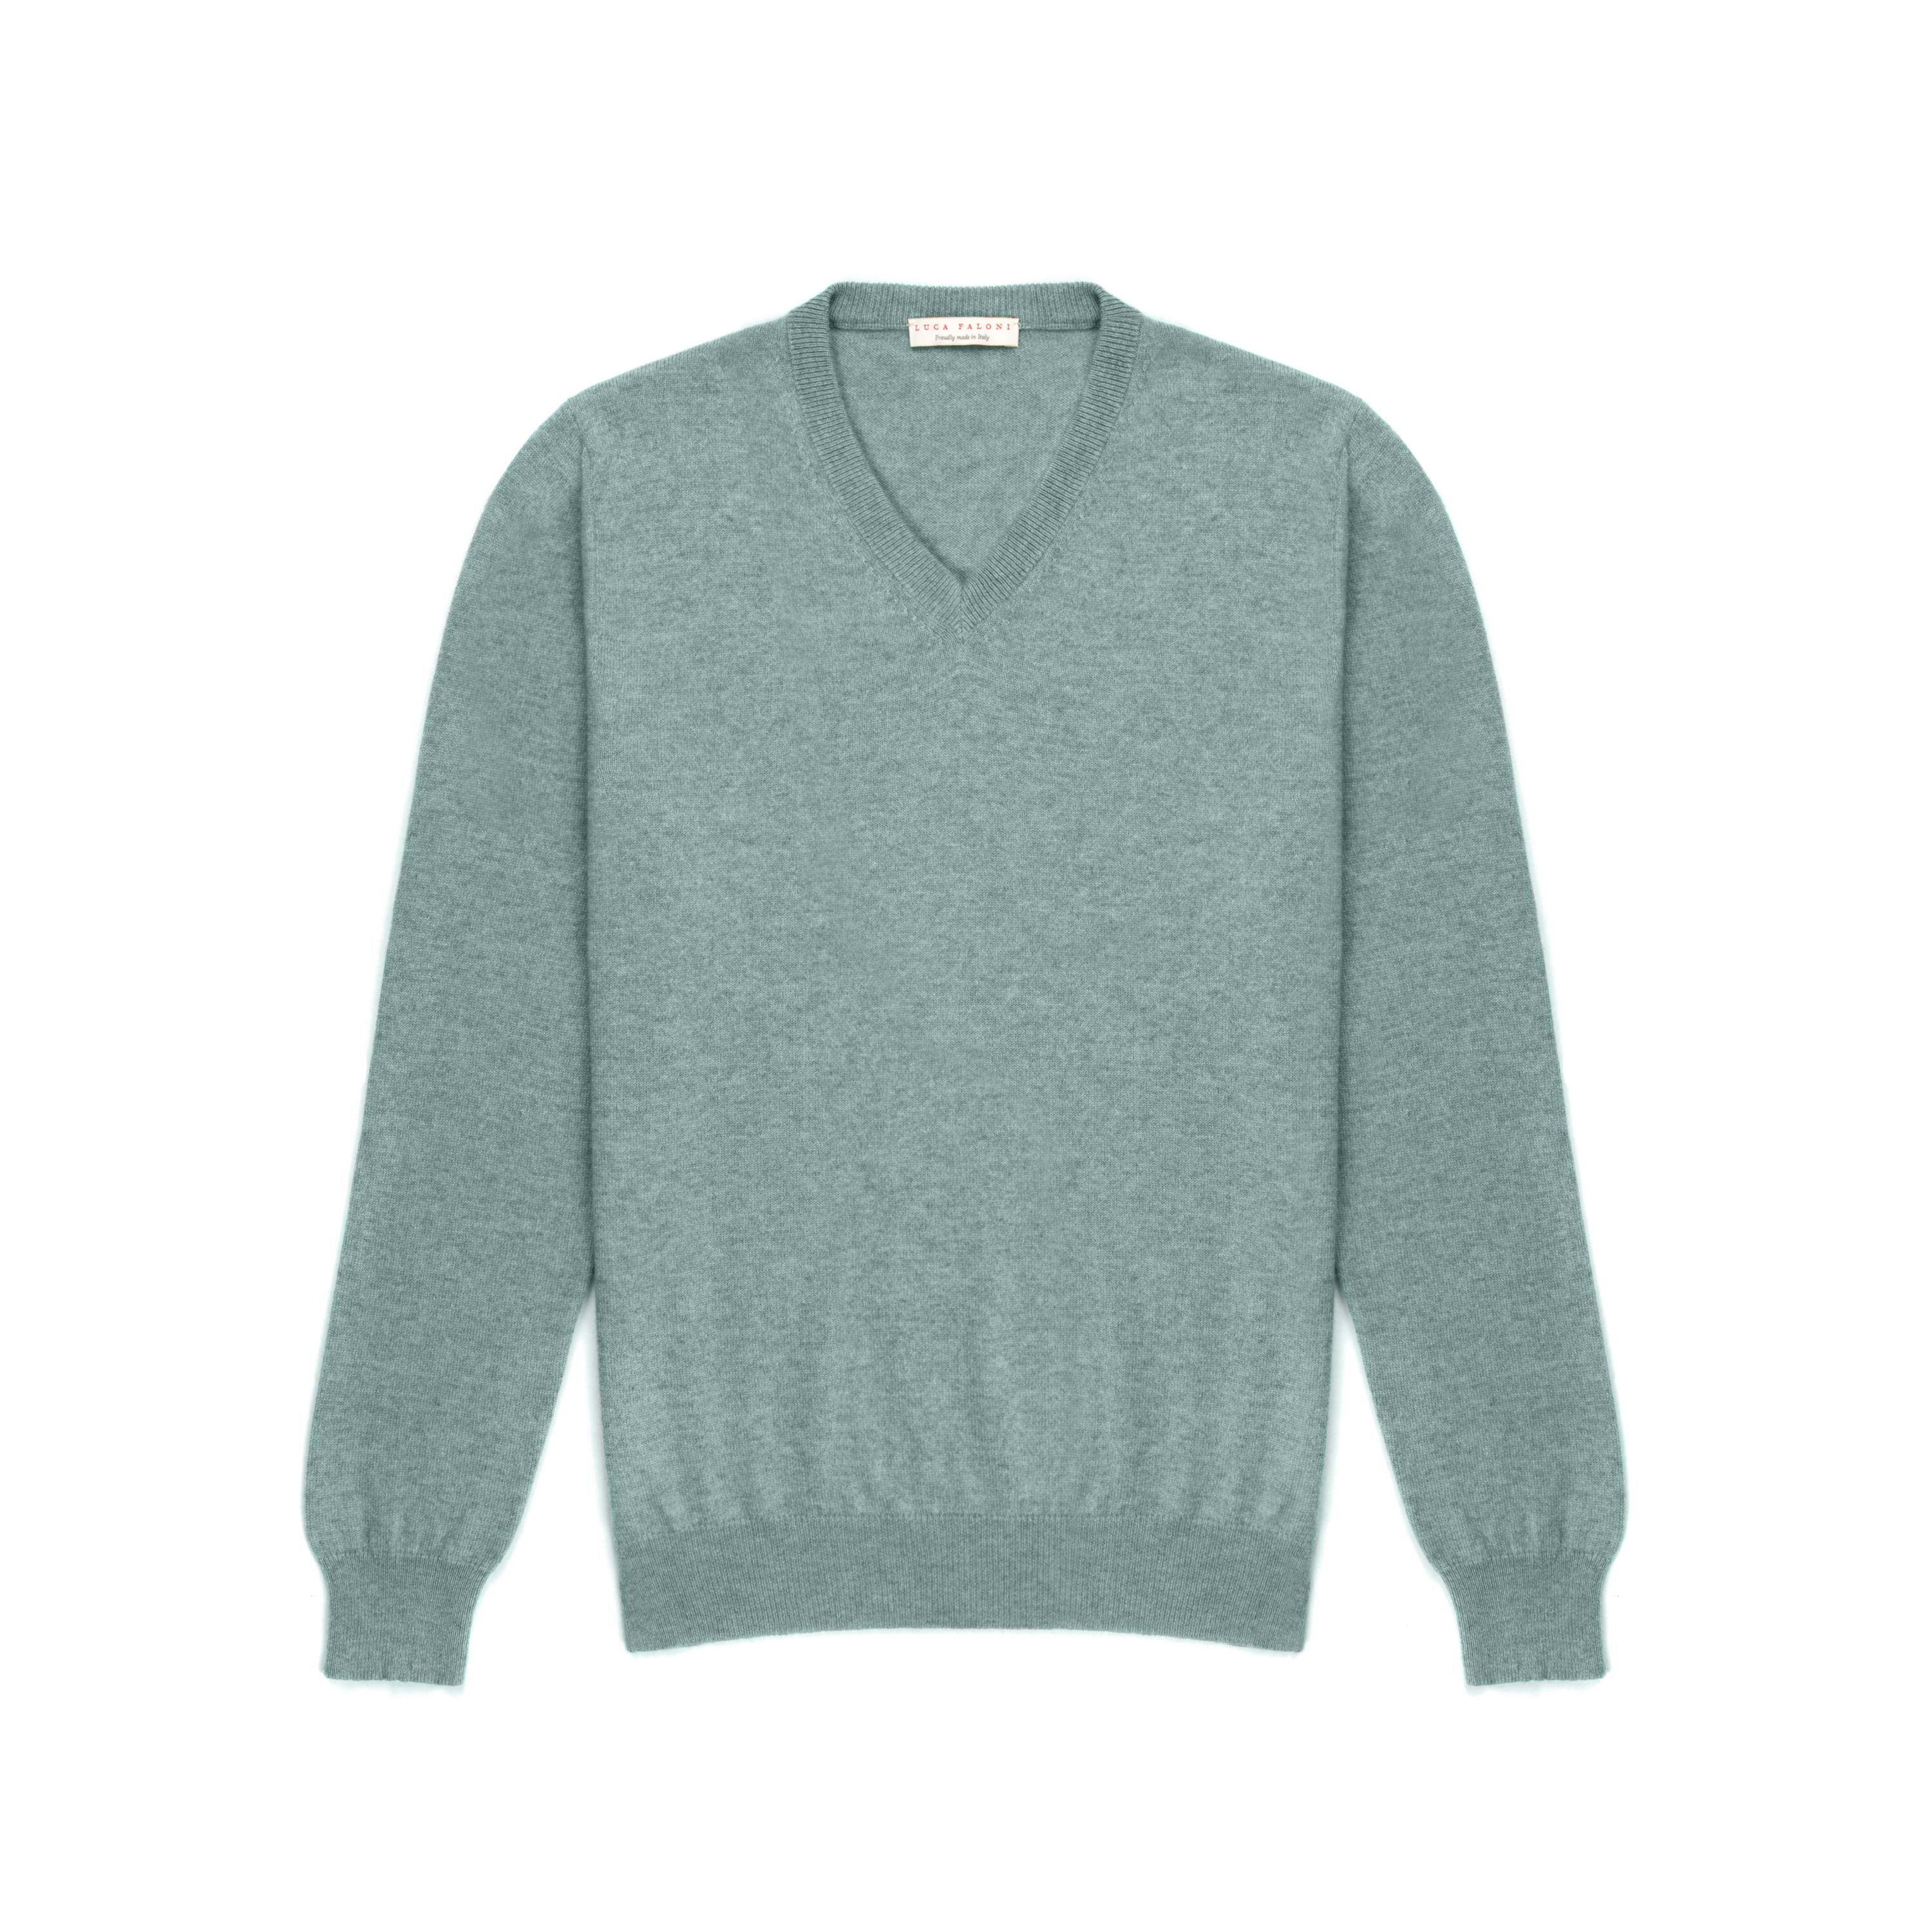 Luca Faloni Marine Green Pure Cashmere V Neck Made in Italy